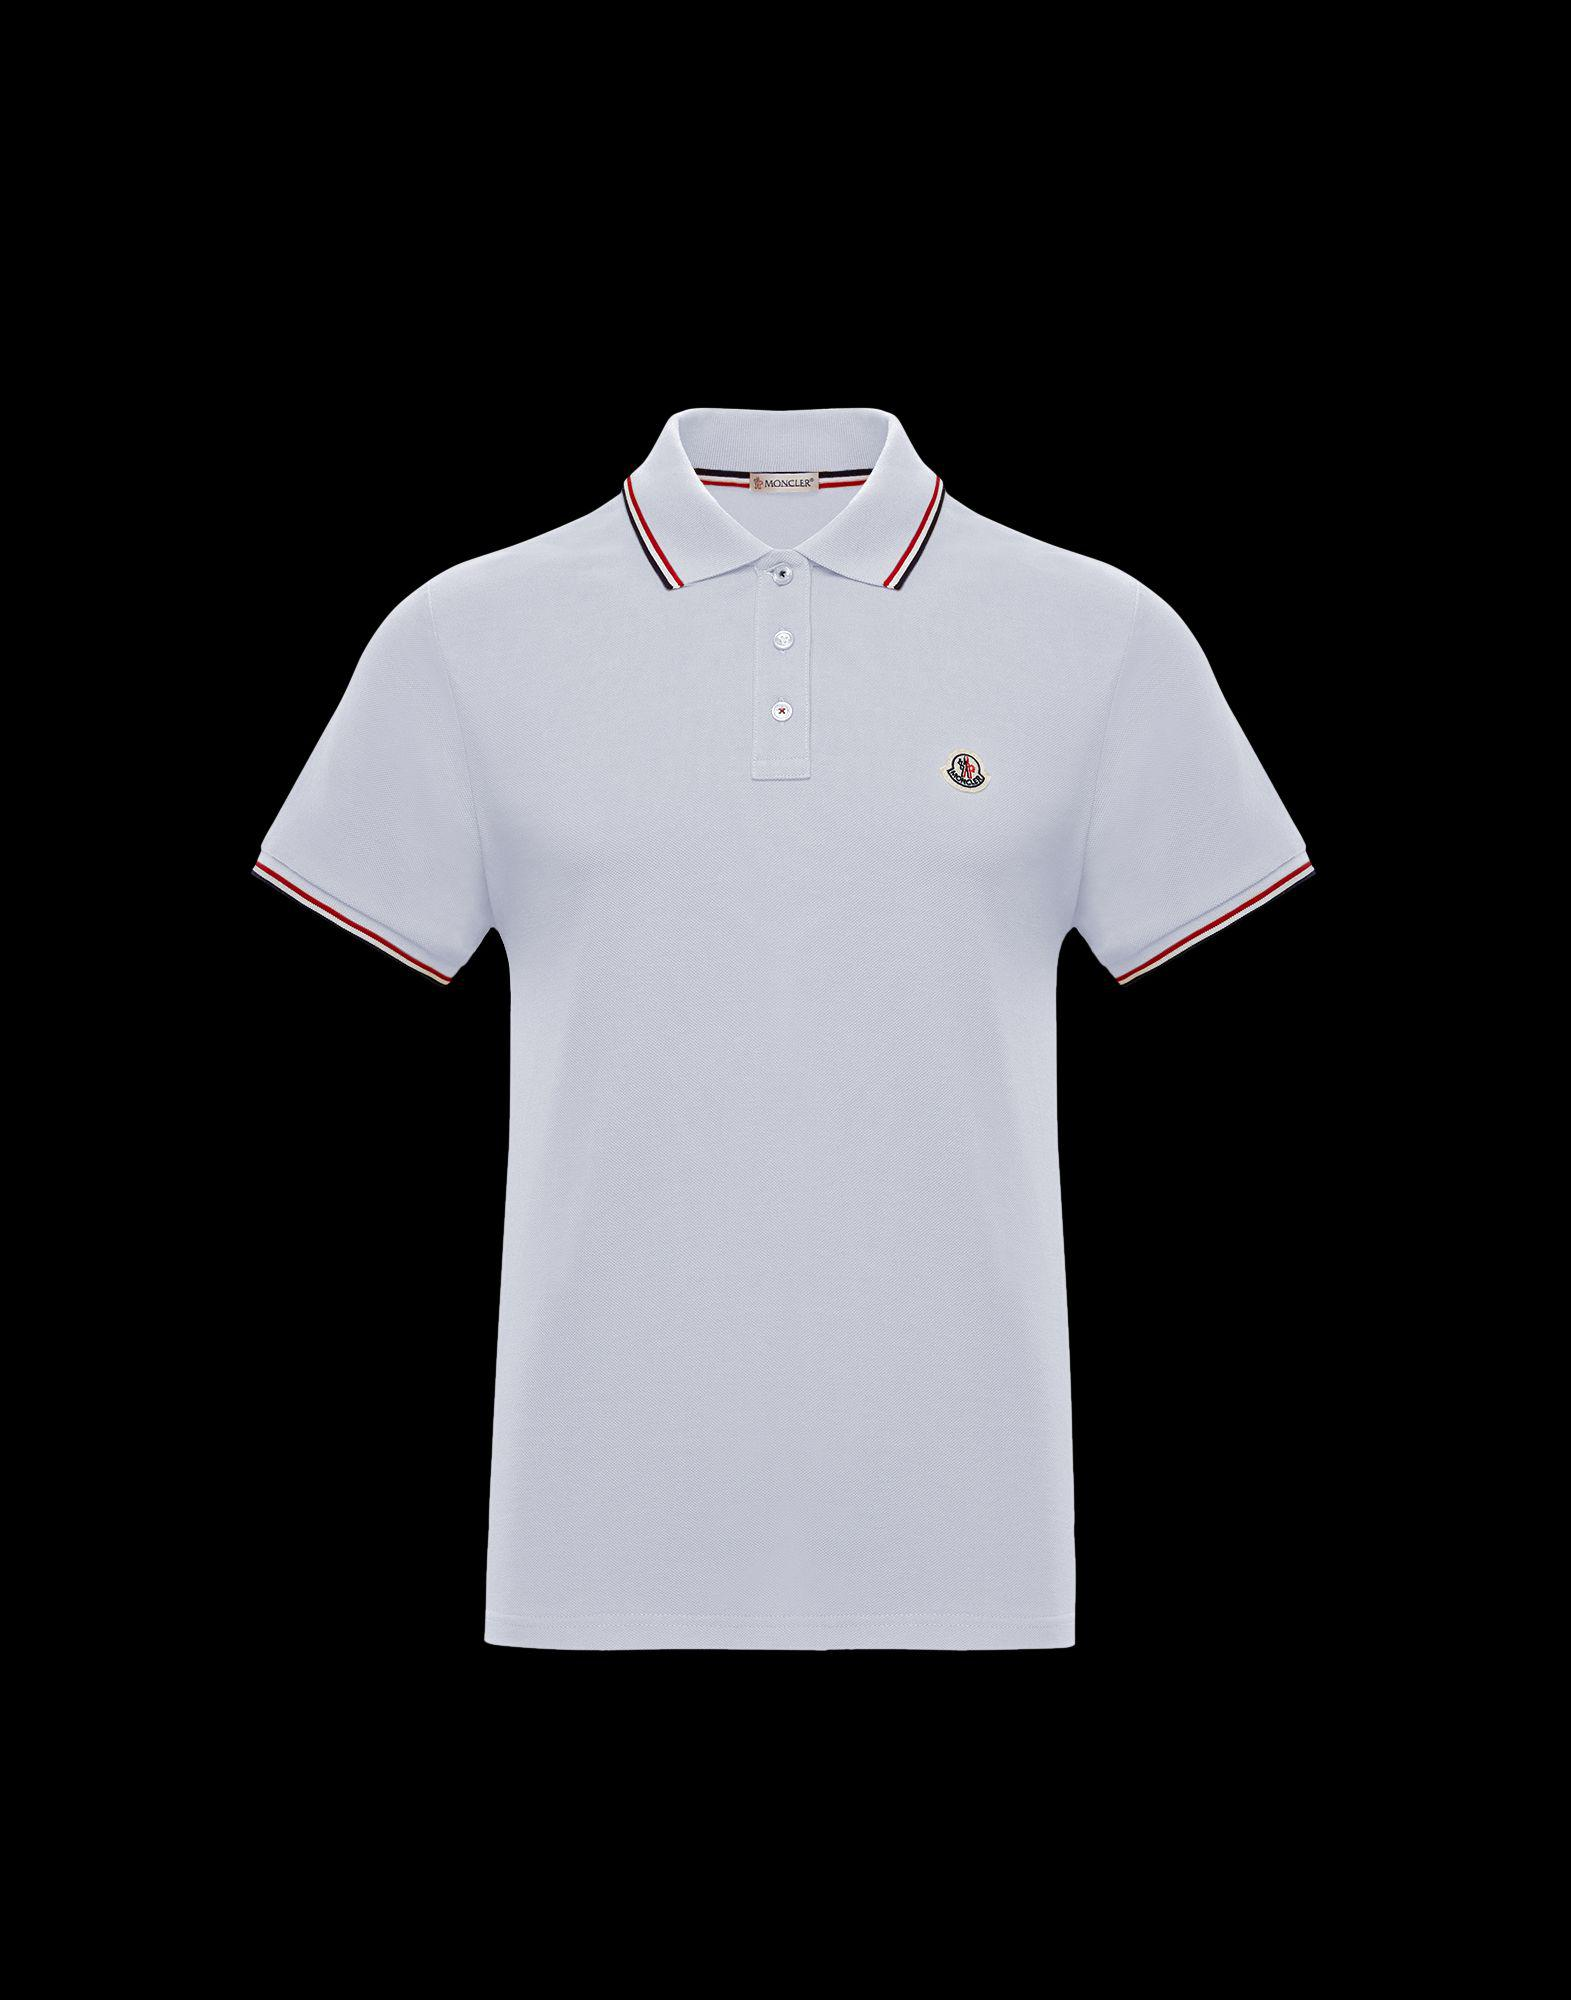 7216a26cf909 Lyst - Moncler Polo Shirt in White for Men